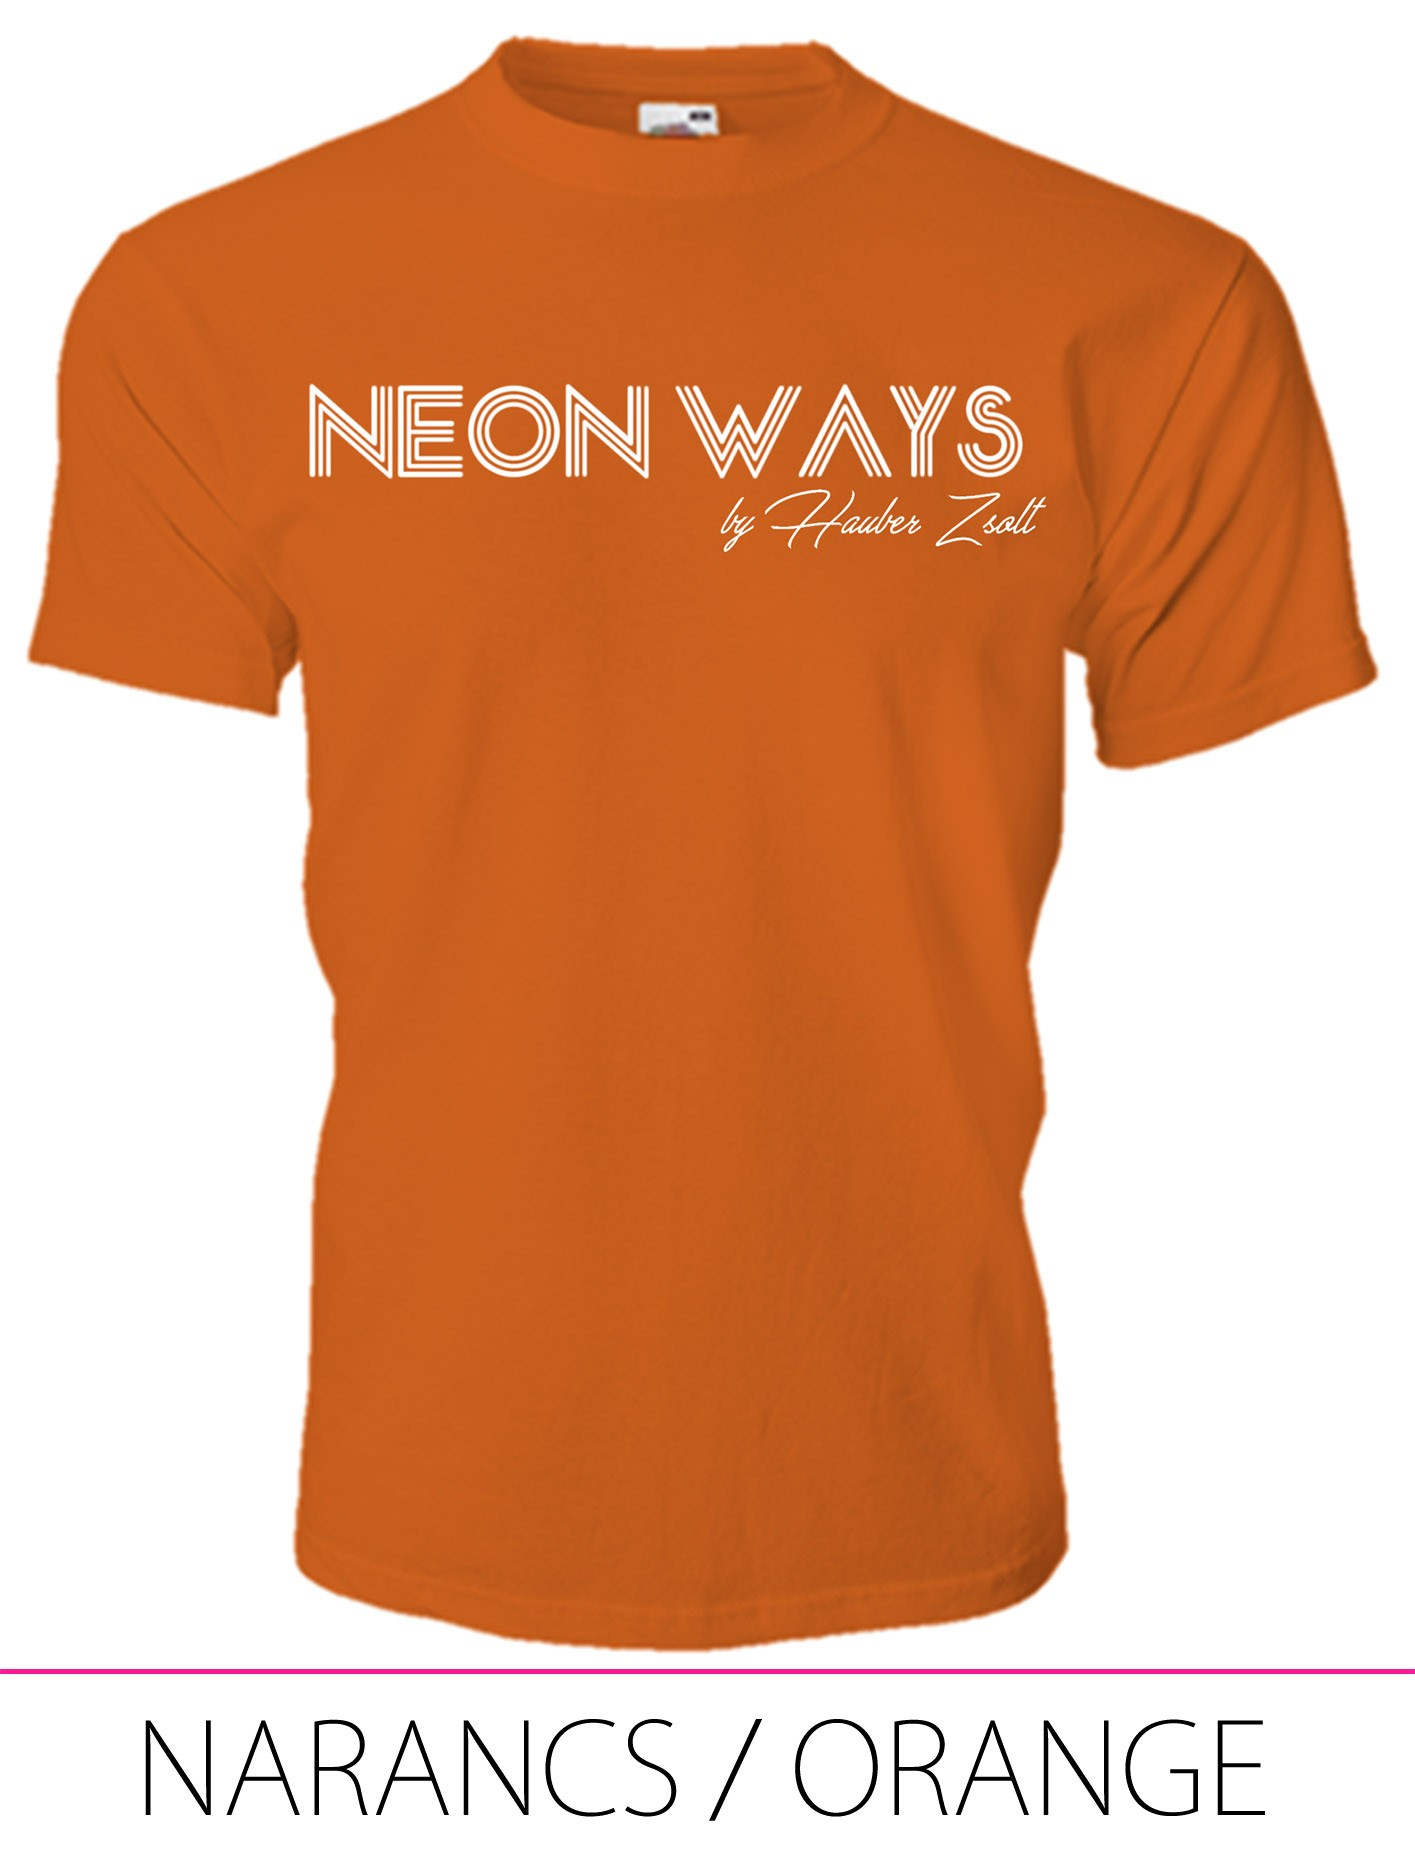 KIDS CREW NECK T-SHIRT NEON WAYS ORANGE